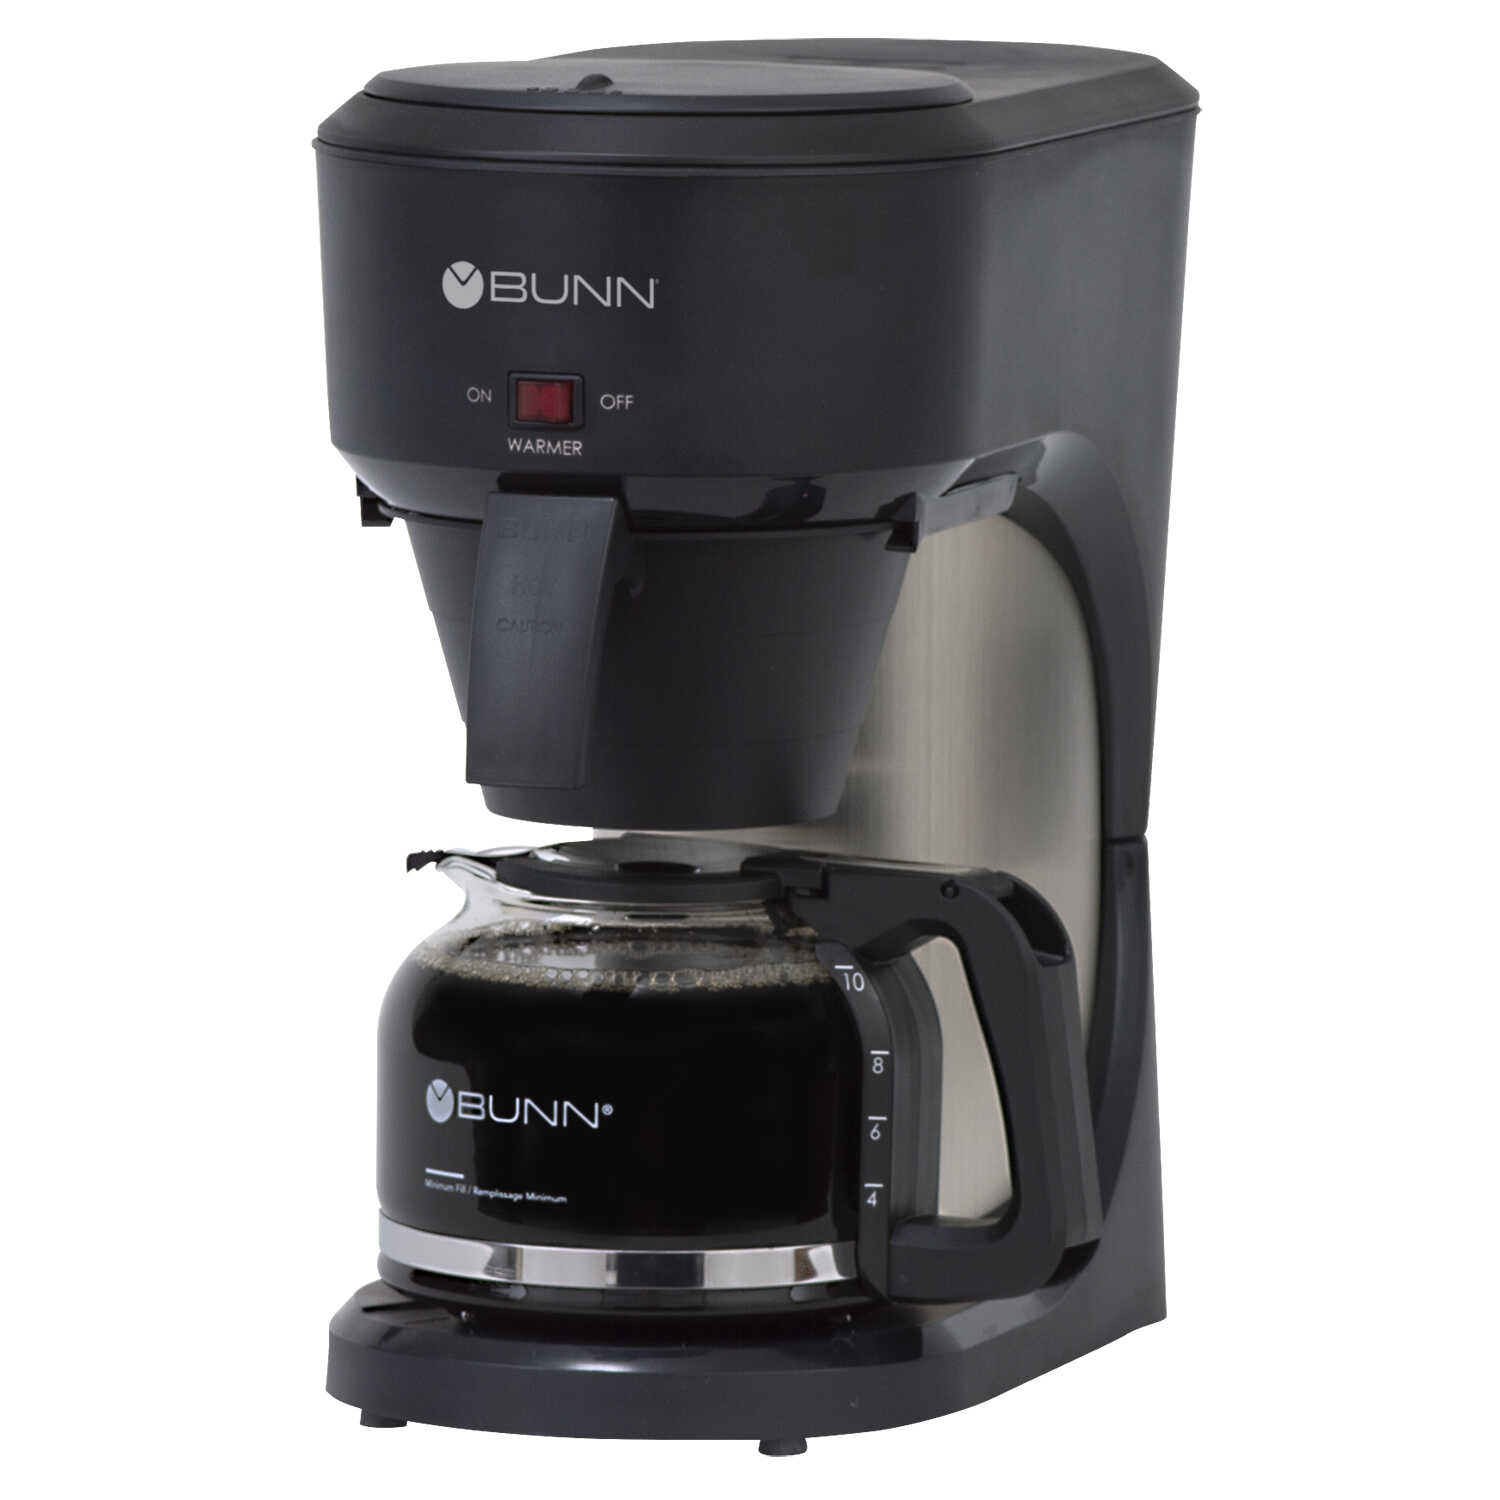 BUNN  SpeedBrew  10 cups Black  Coffee Maker